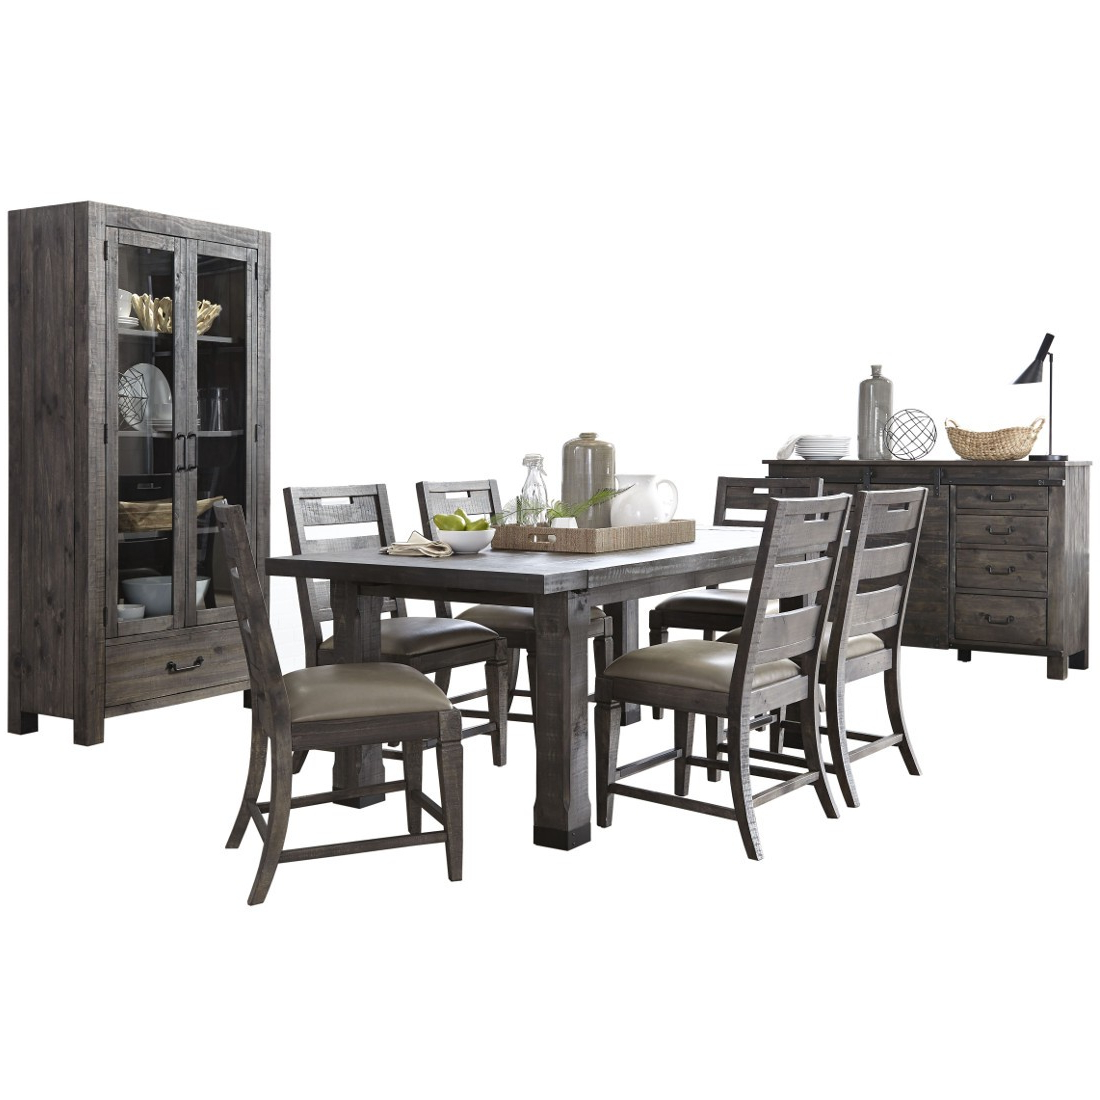 Charcoal Transitional 6 Seating Rectangular Dining Tables In Latest Magnussen Abington Rectangular Dining Table Set In Weathered Charcoal (View 10 of 25)